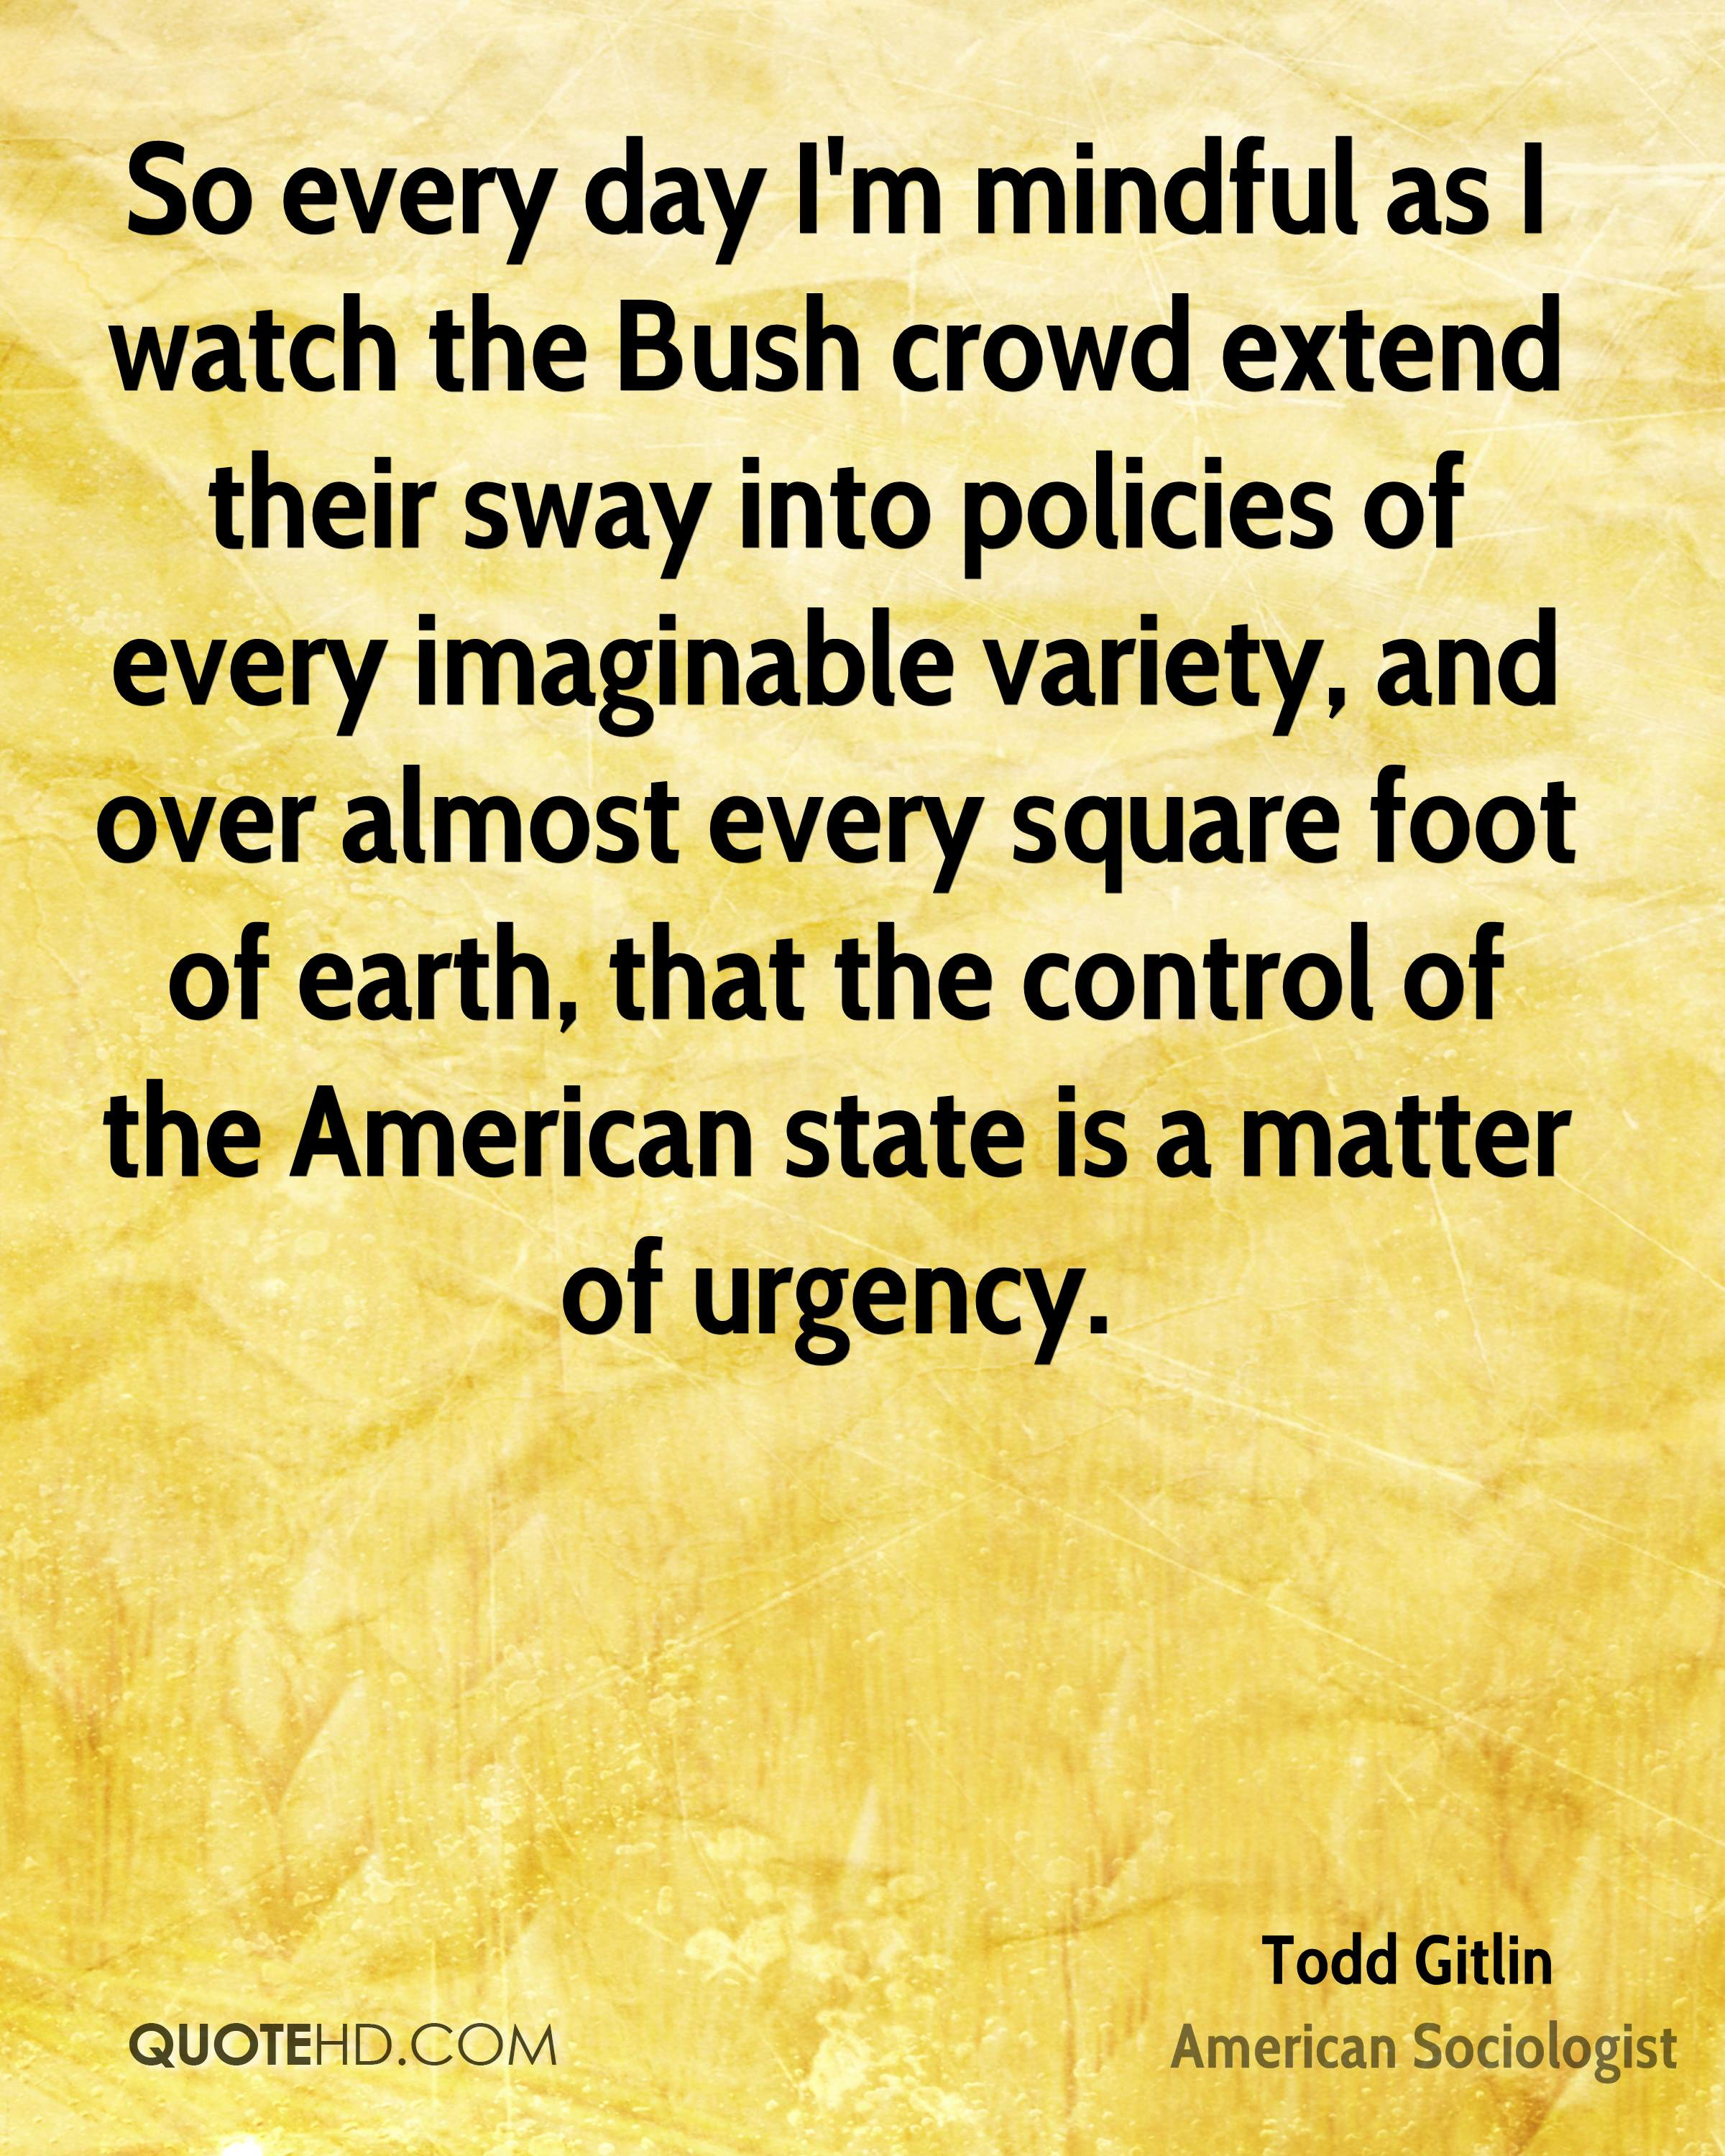 So every day I'm mindful as I watch the Bush crowd extend their sway into policies of every imaginable variety, and over almost every square foot of earth, that the control of the American state is a matter of urgency.